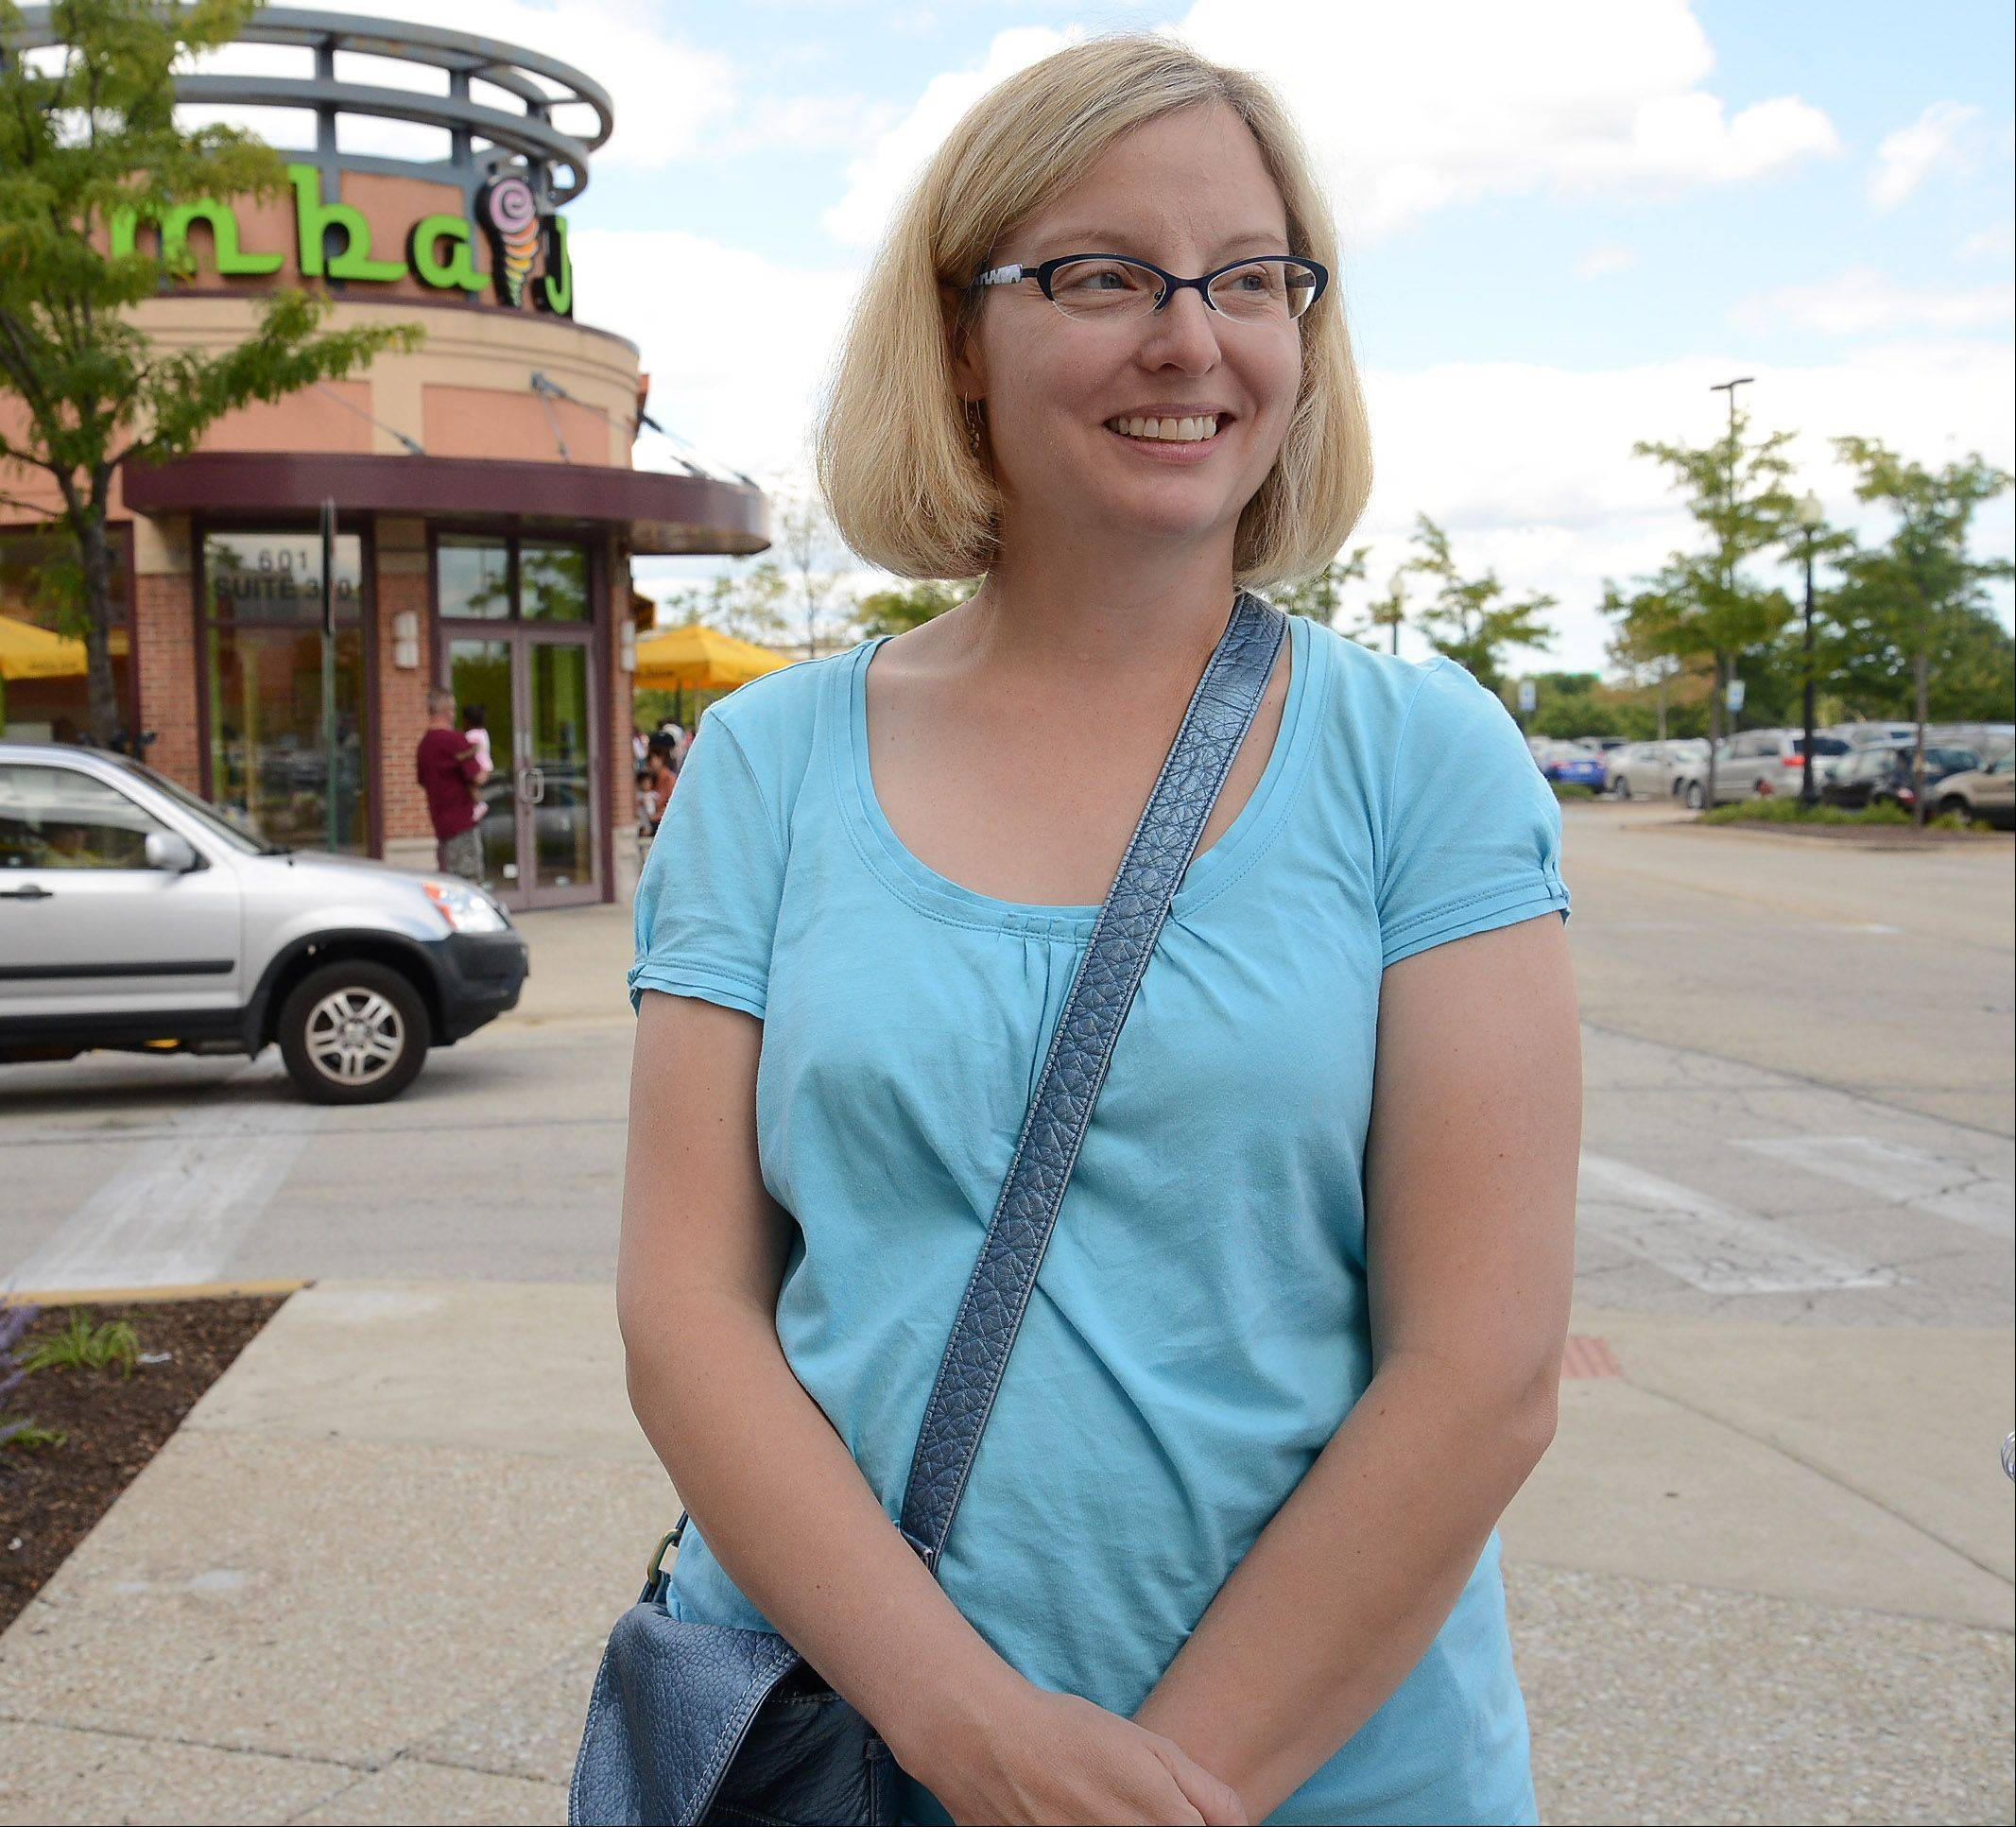 Heather Michalides, of Schaumburg, talks about back-to-school shopping.